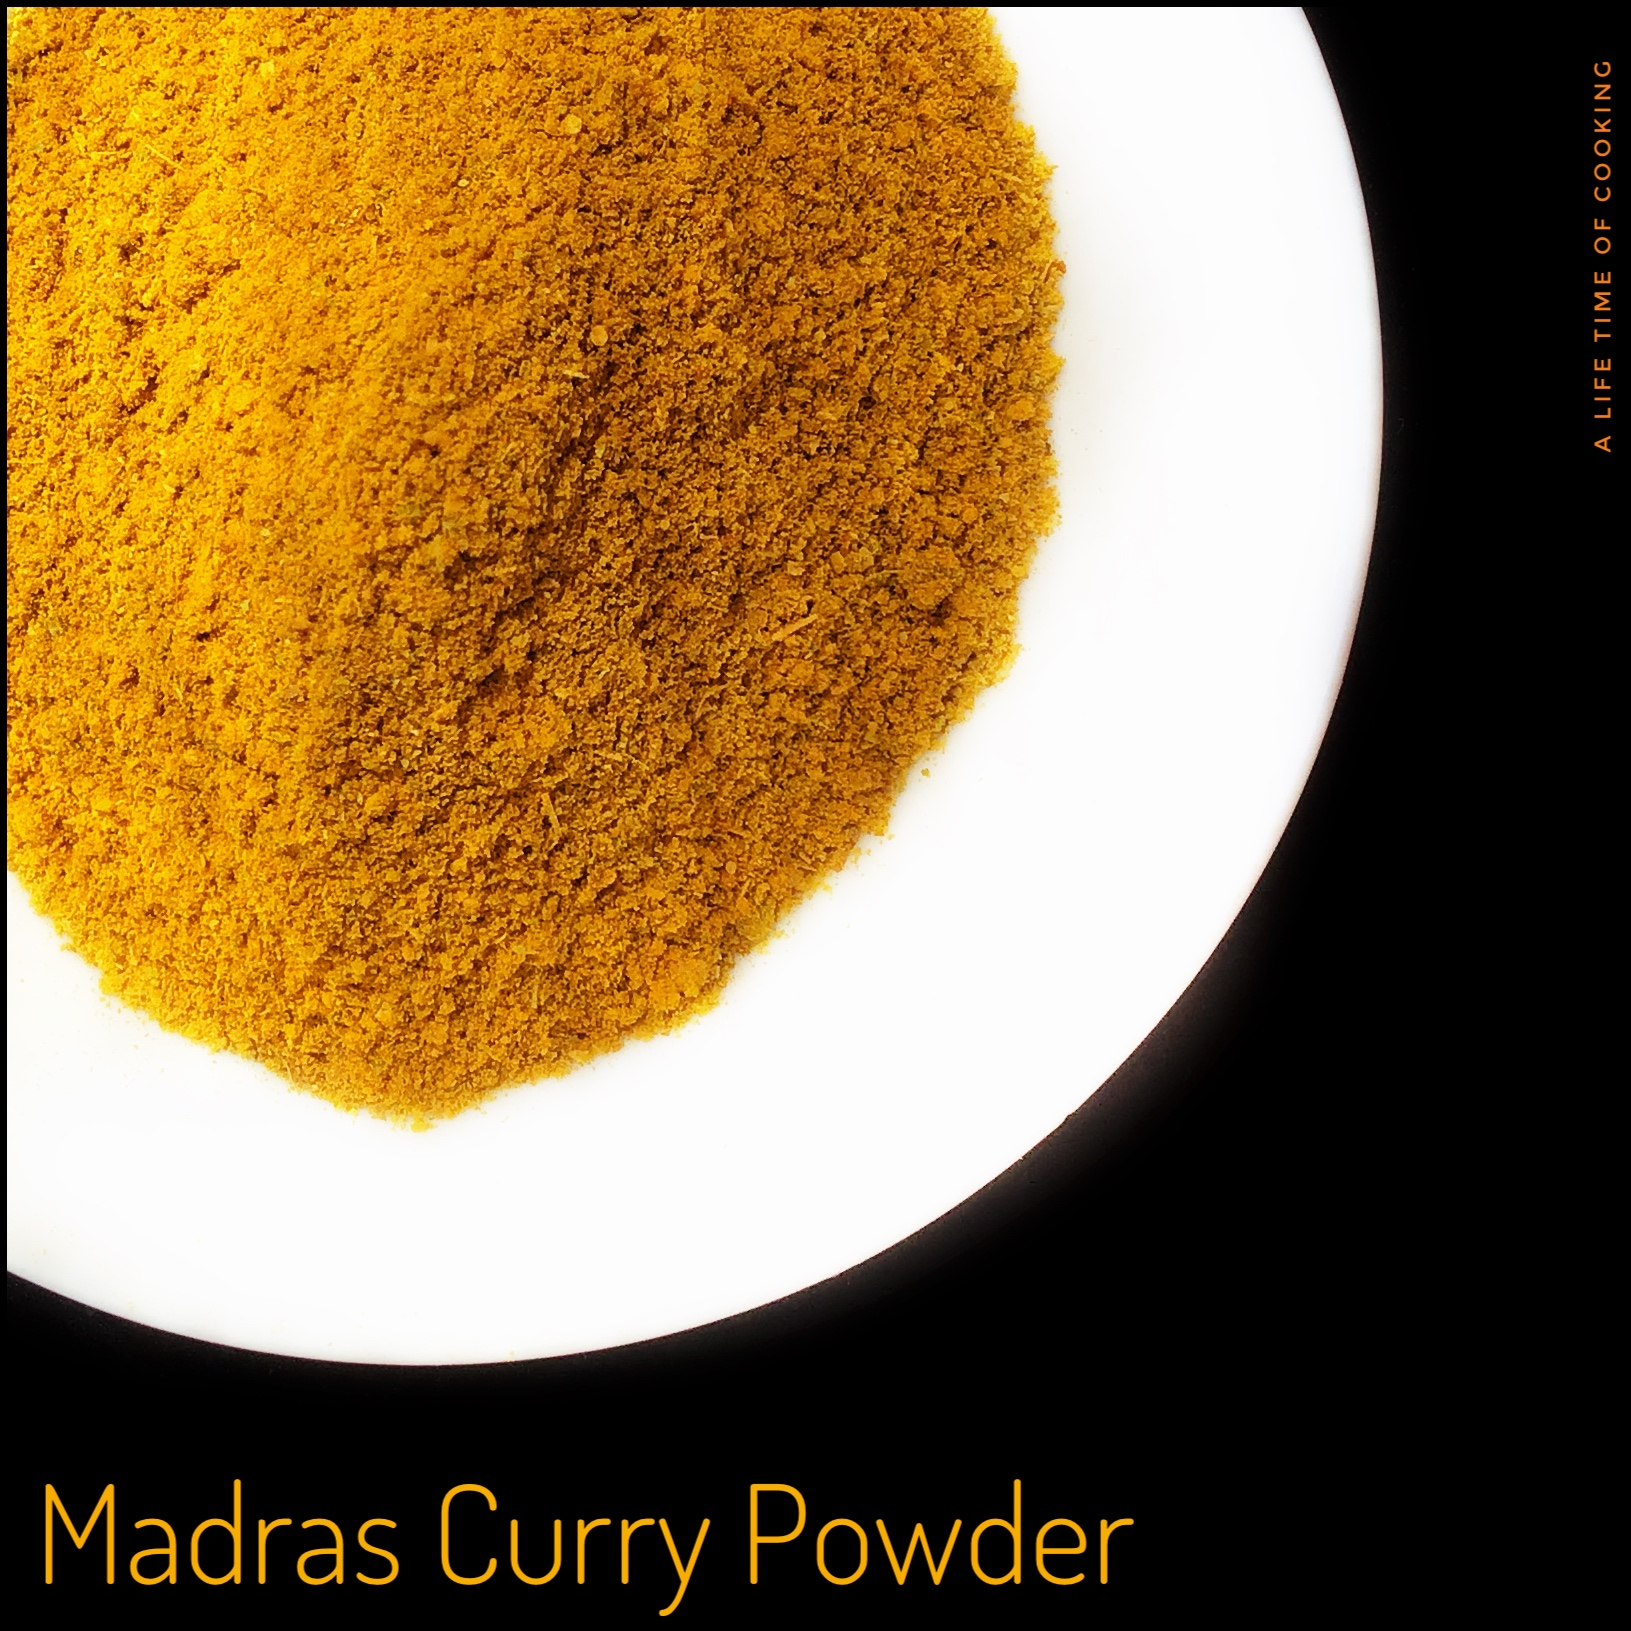 Indian Essentials: Madras Curry Powder for Quick Anglo-Indian Flavours